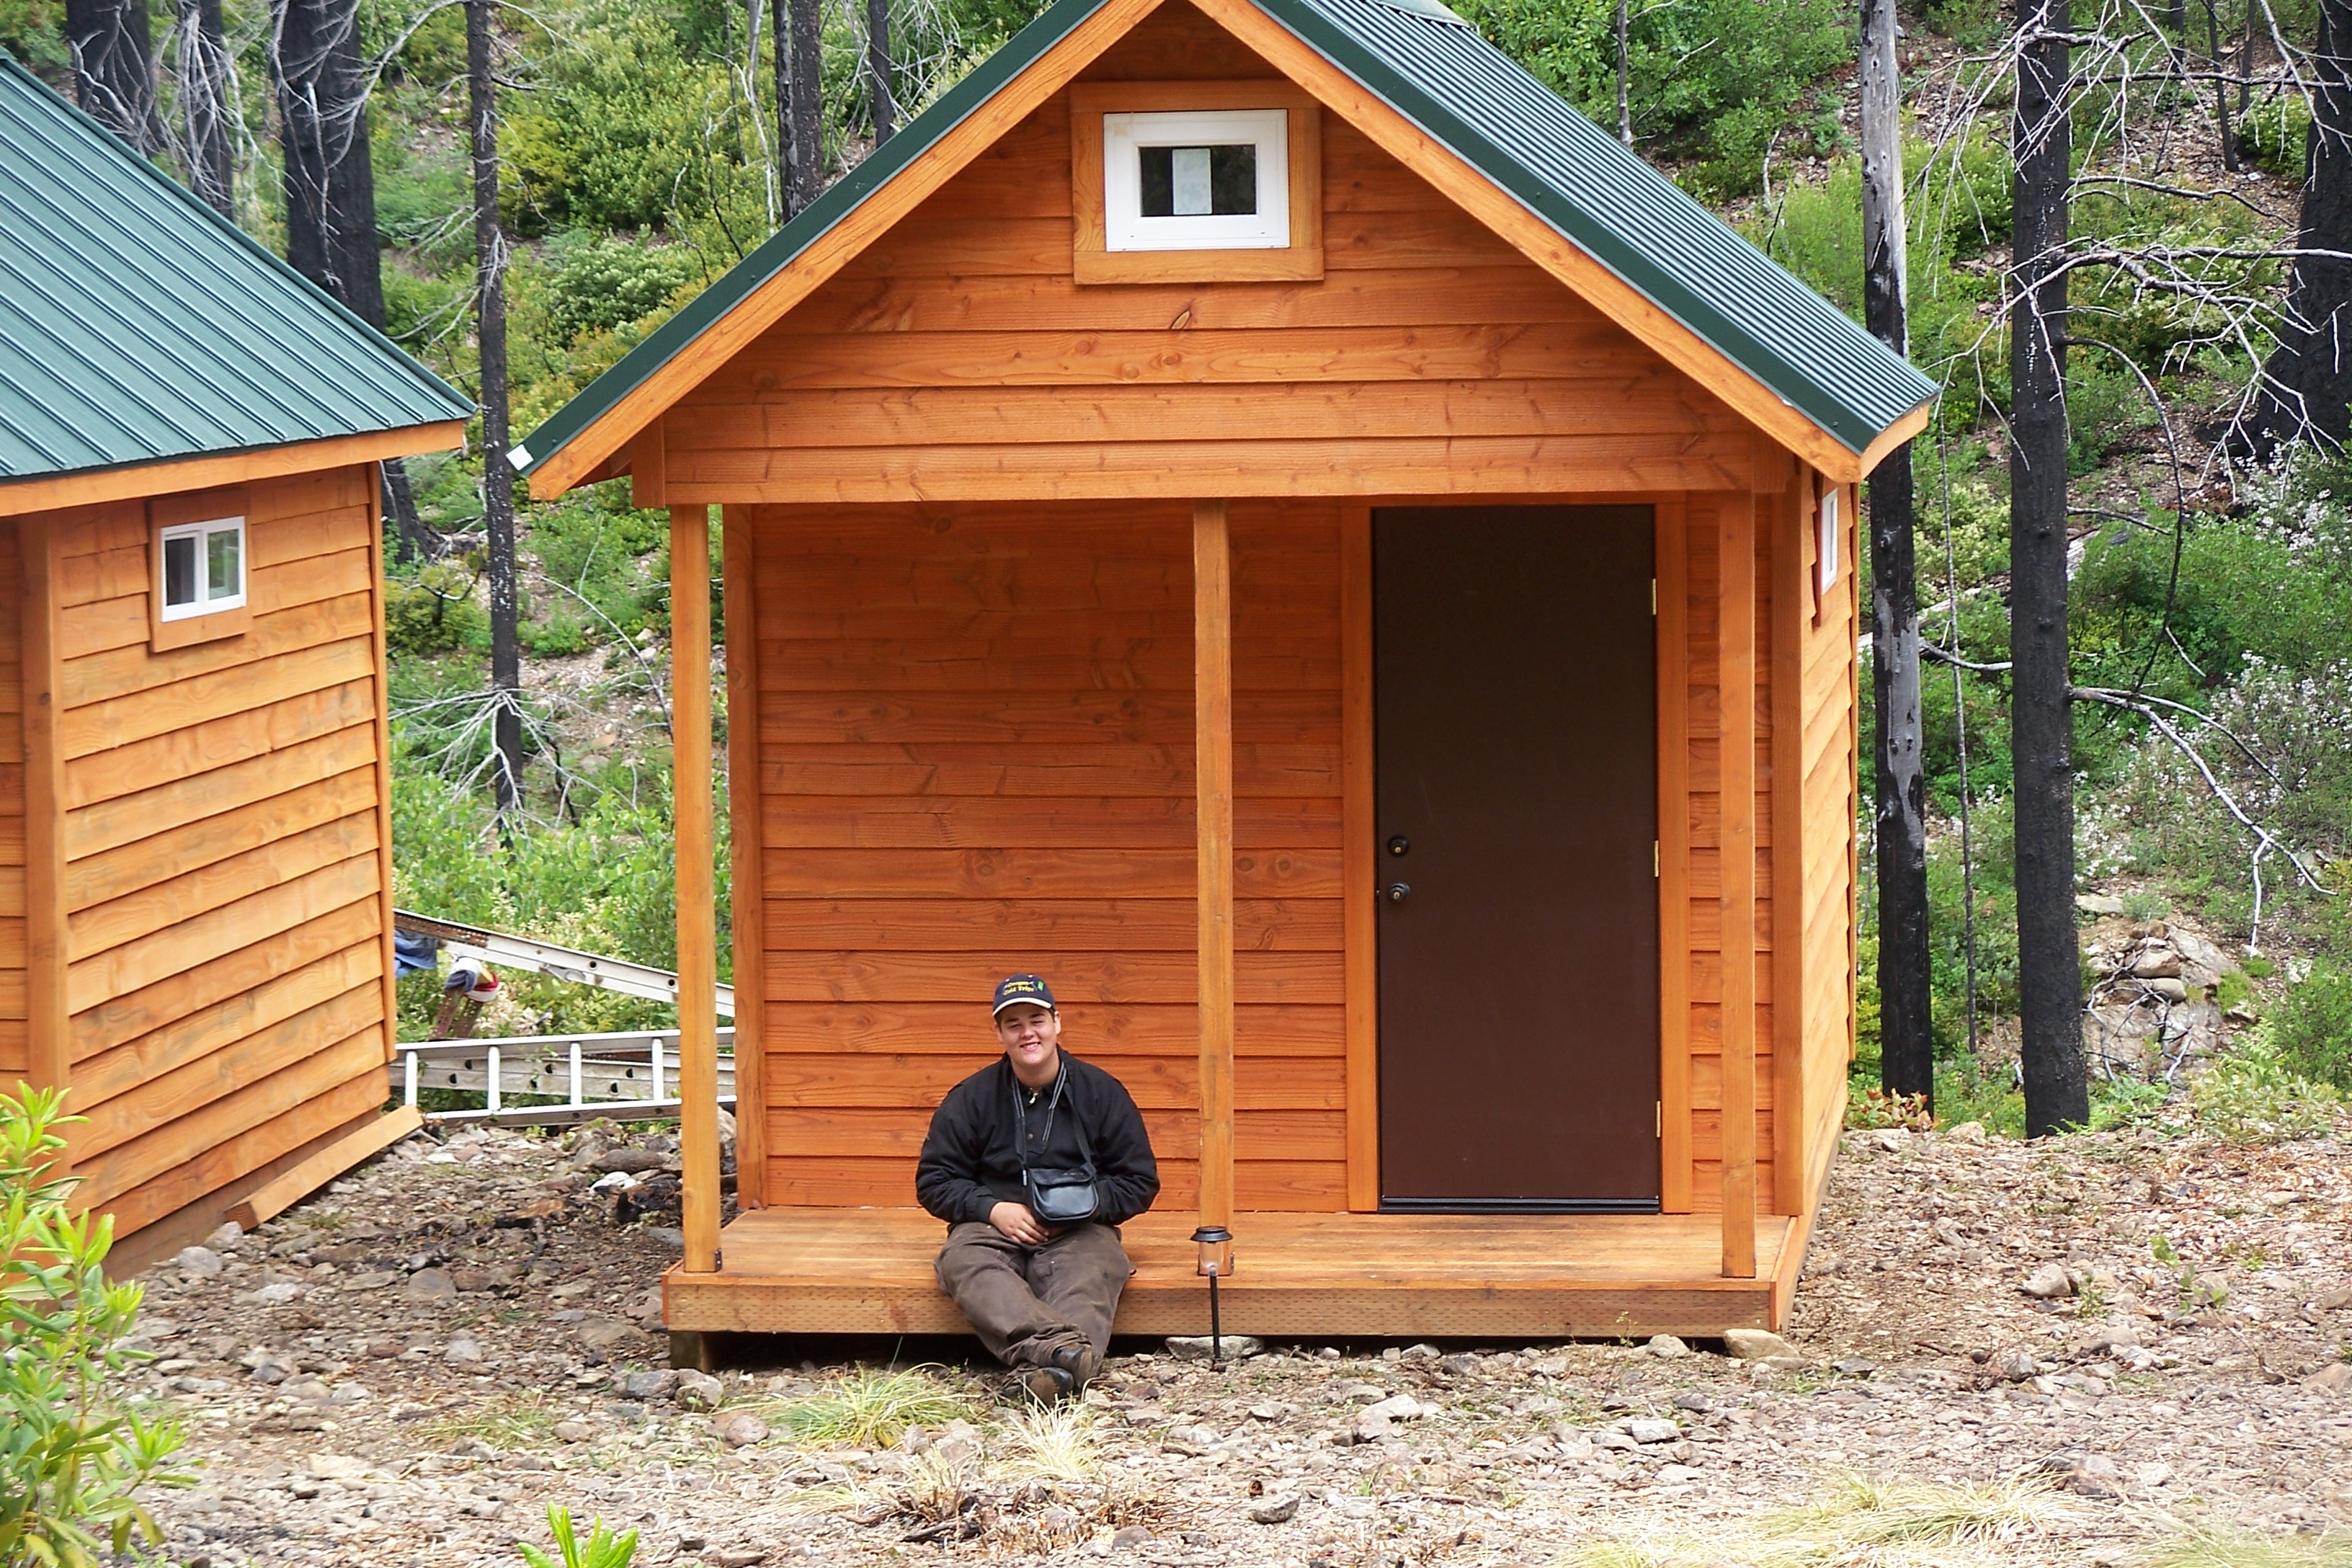 Small hunting cabin kits a frame cabin kits small hunting for Small hunting cabin designs